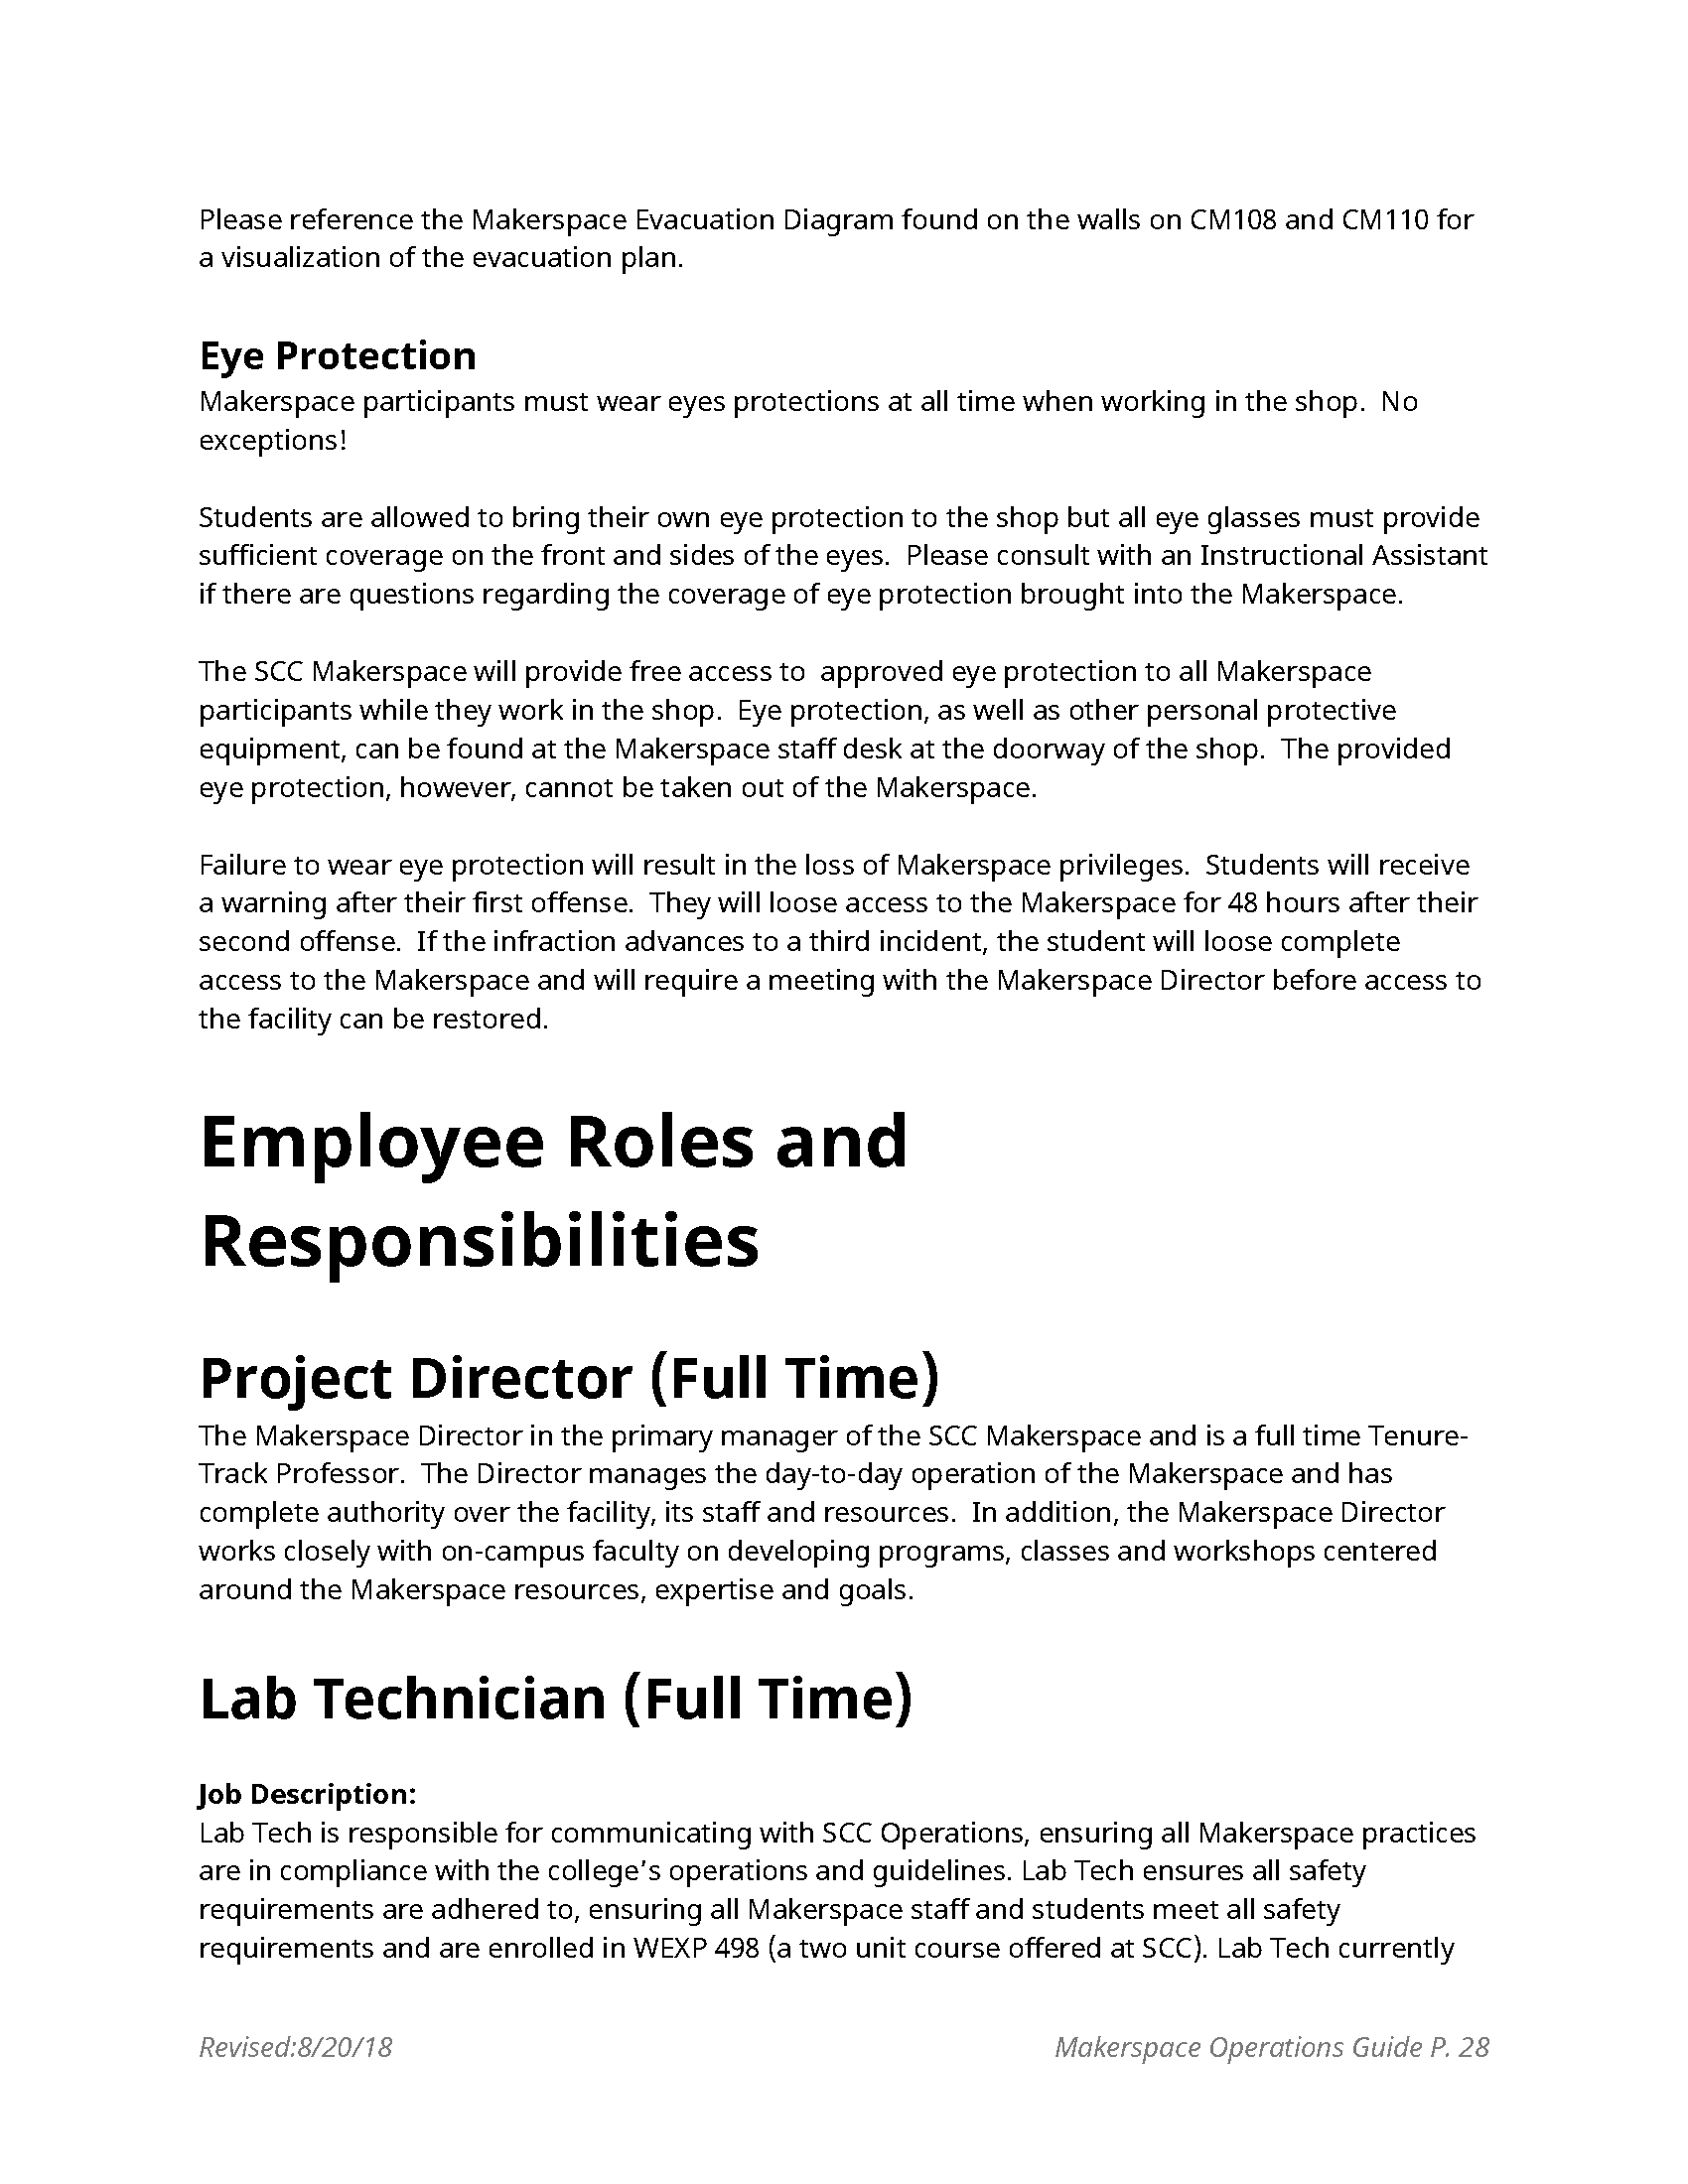 ms_ops_manual_8-20_Page_28.png